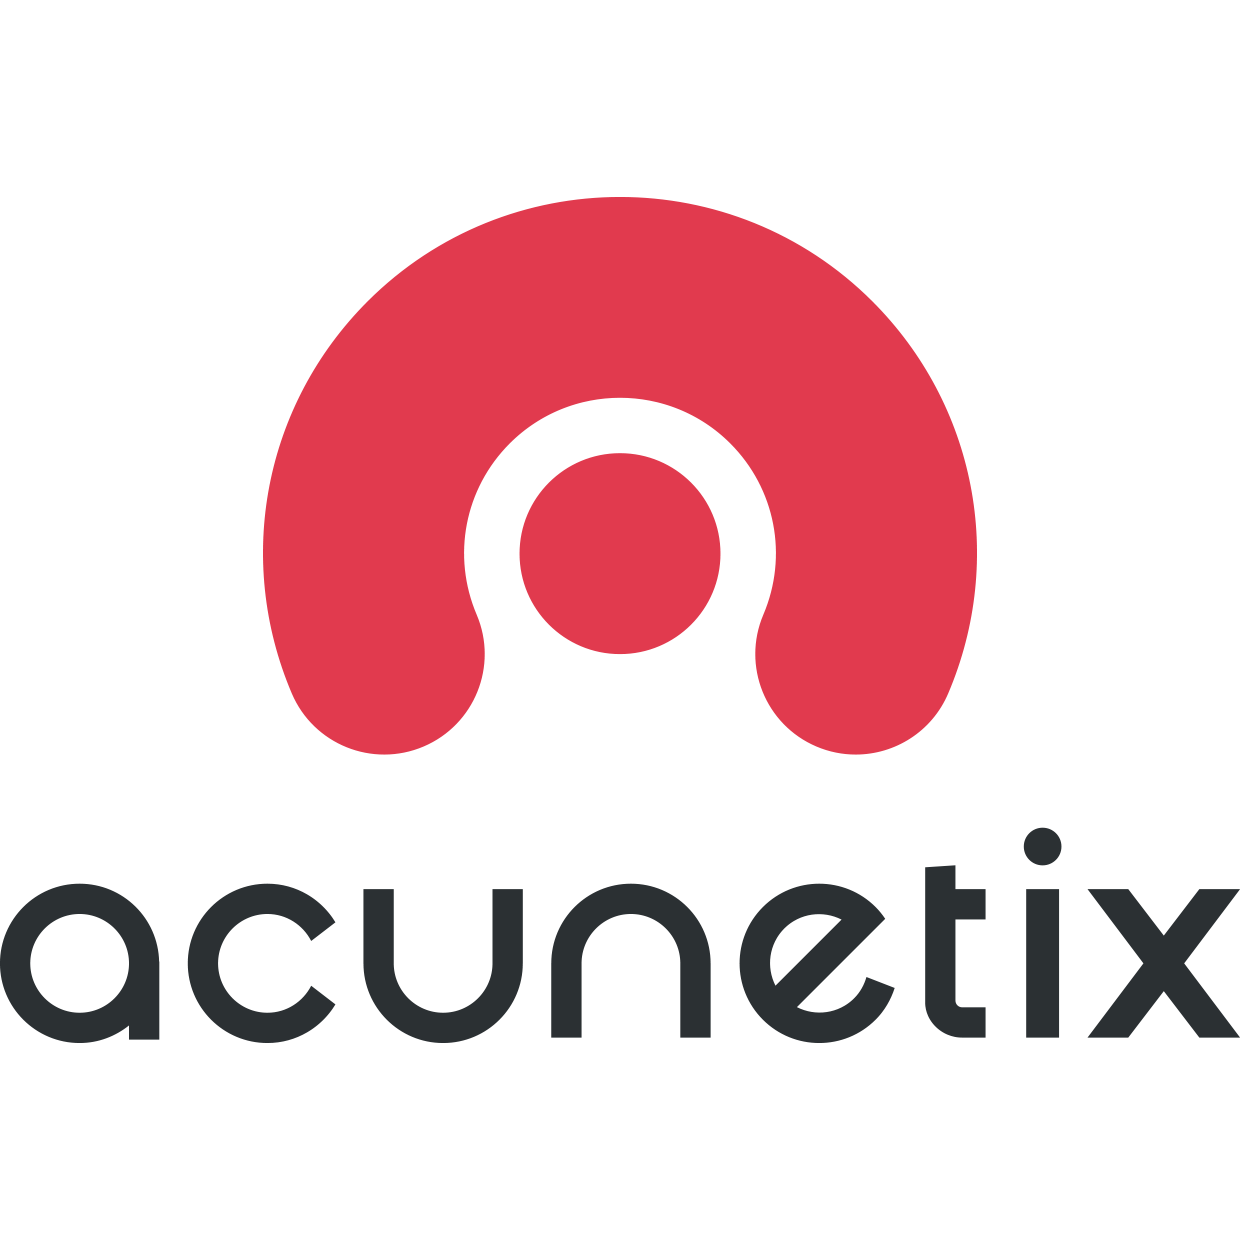 [Information Security資訊安全]Acunetix Web Vulnerability Scanner 網站安全檢測工具 使用